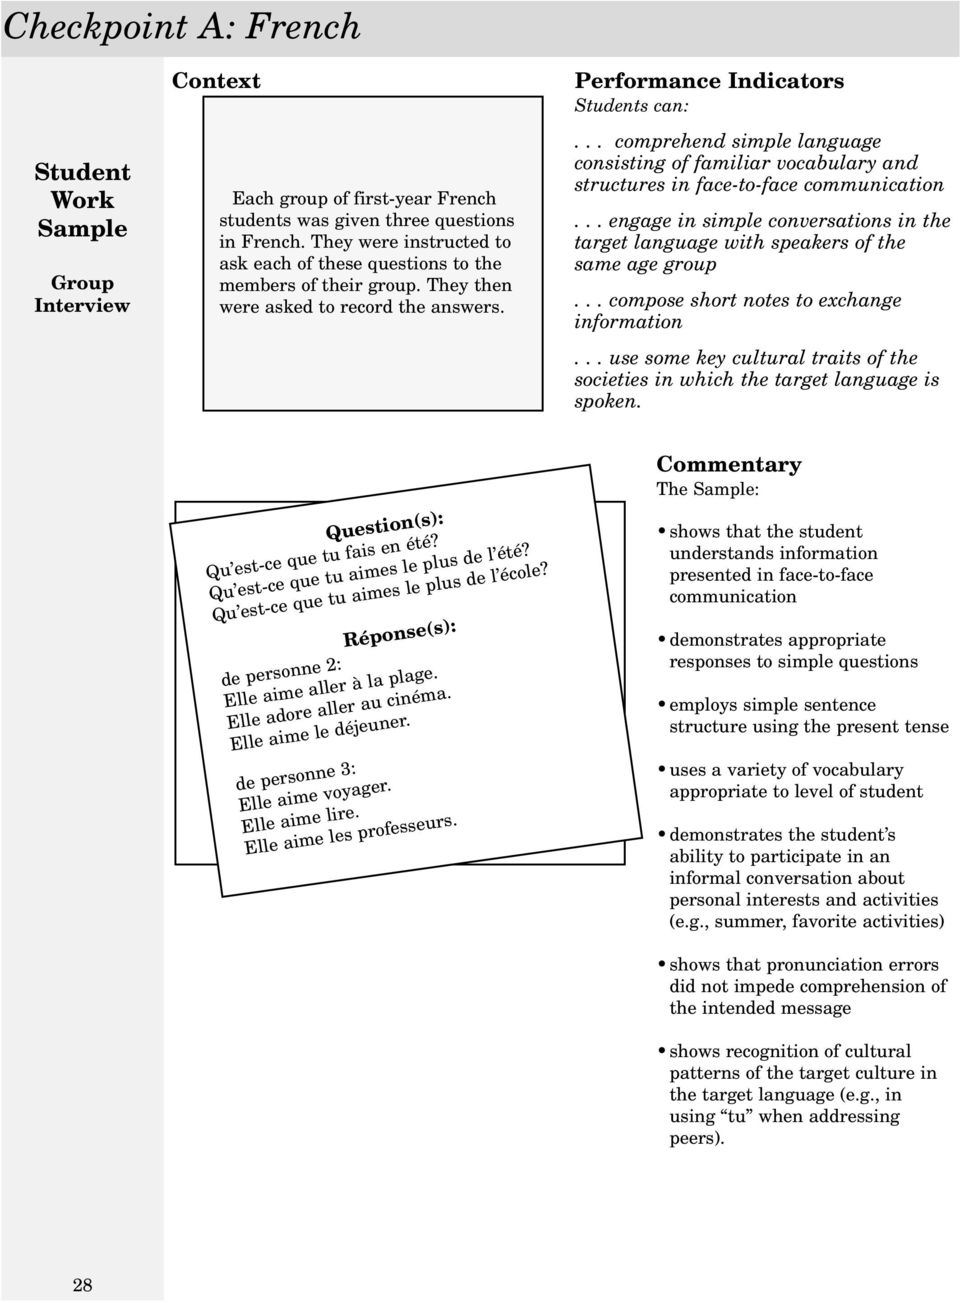 Checkpoint A French Student Work Sample Performance Indicators